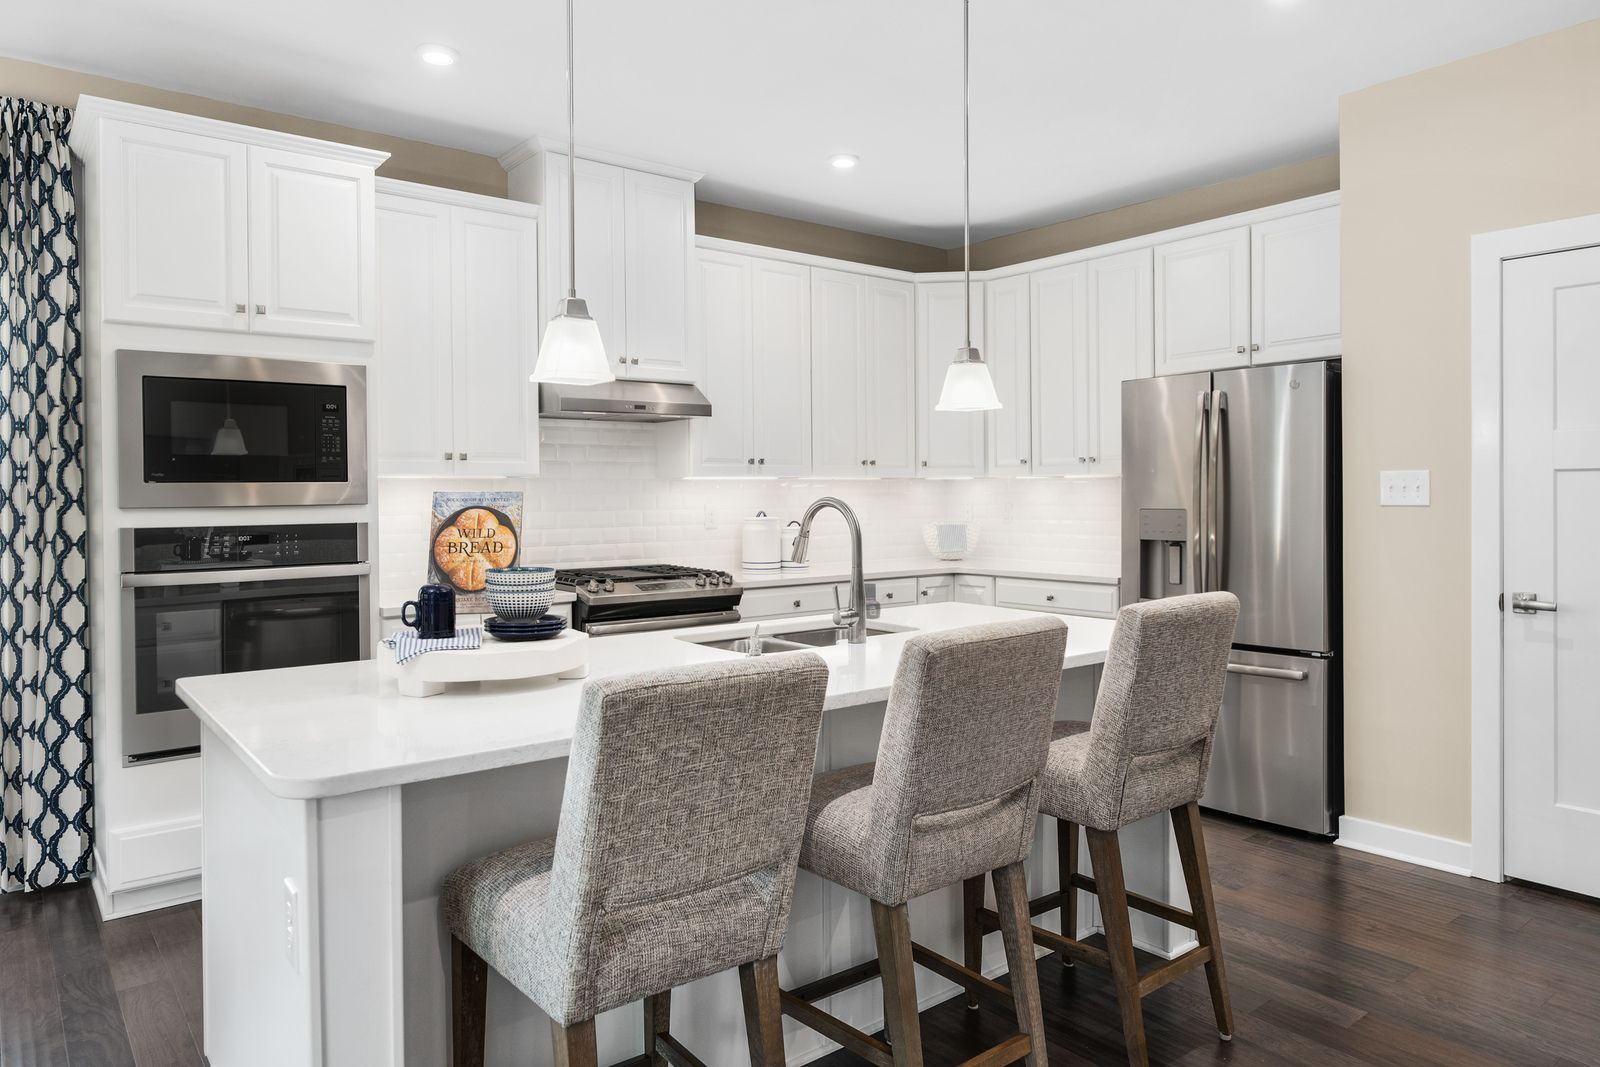 Kitchen featured in the Cumberland By Ryan Homes in Cleveland, OH